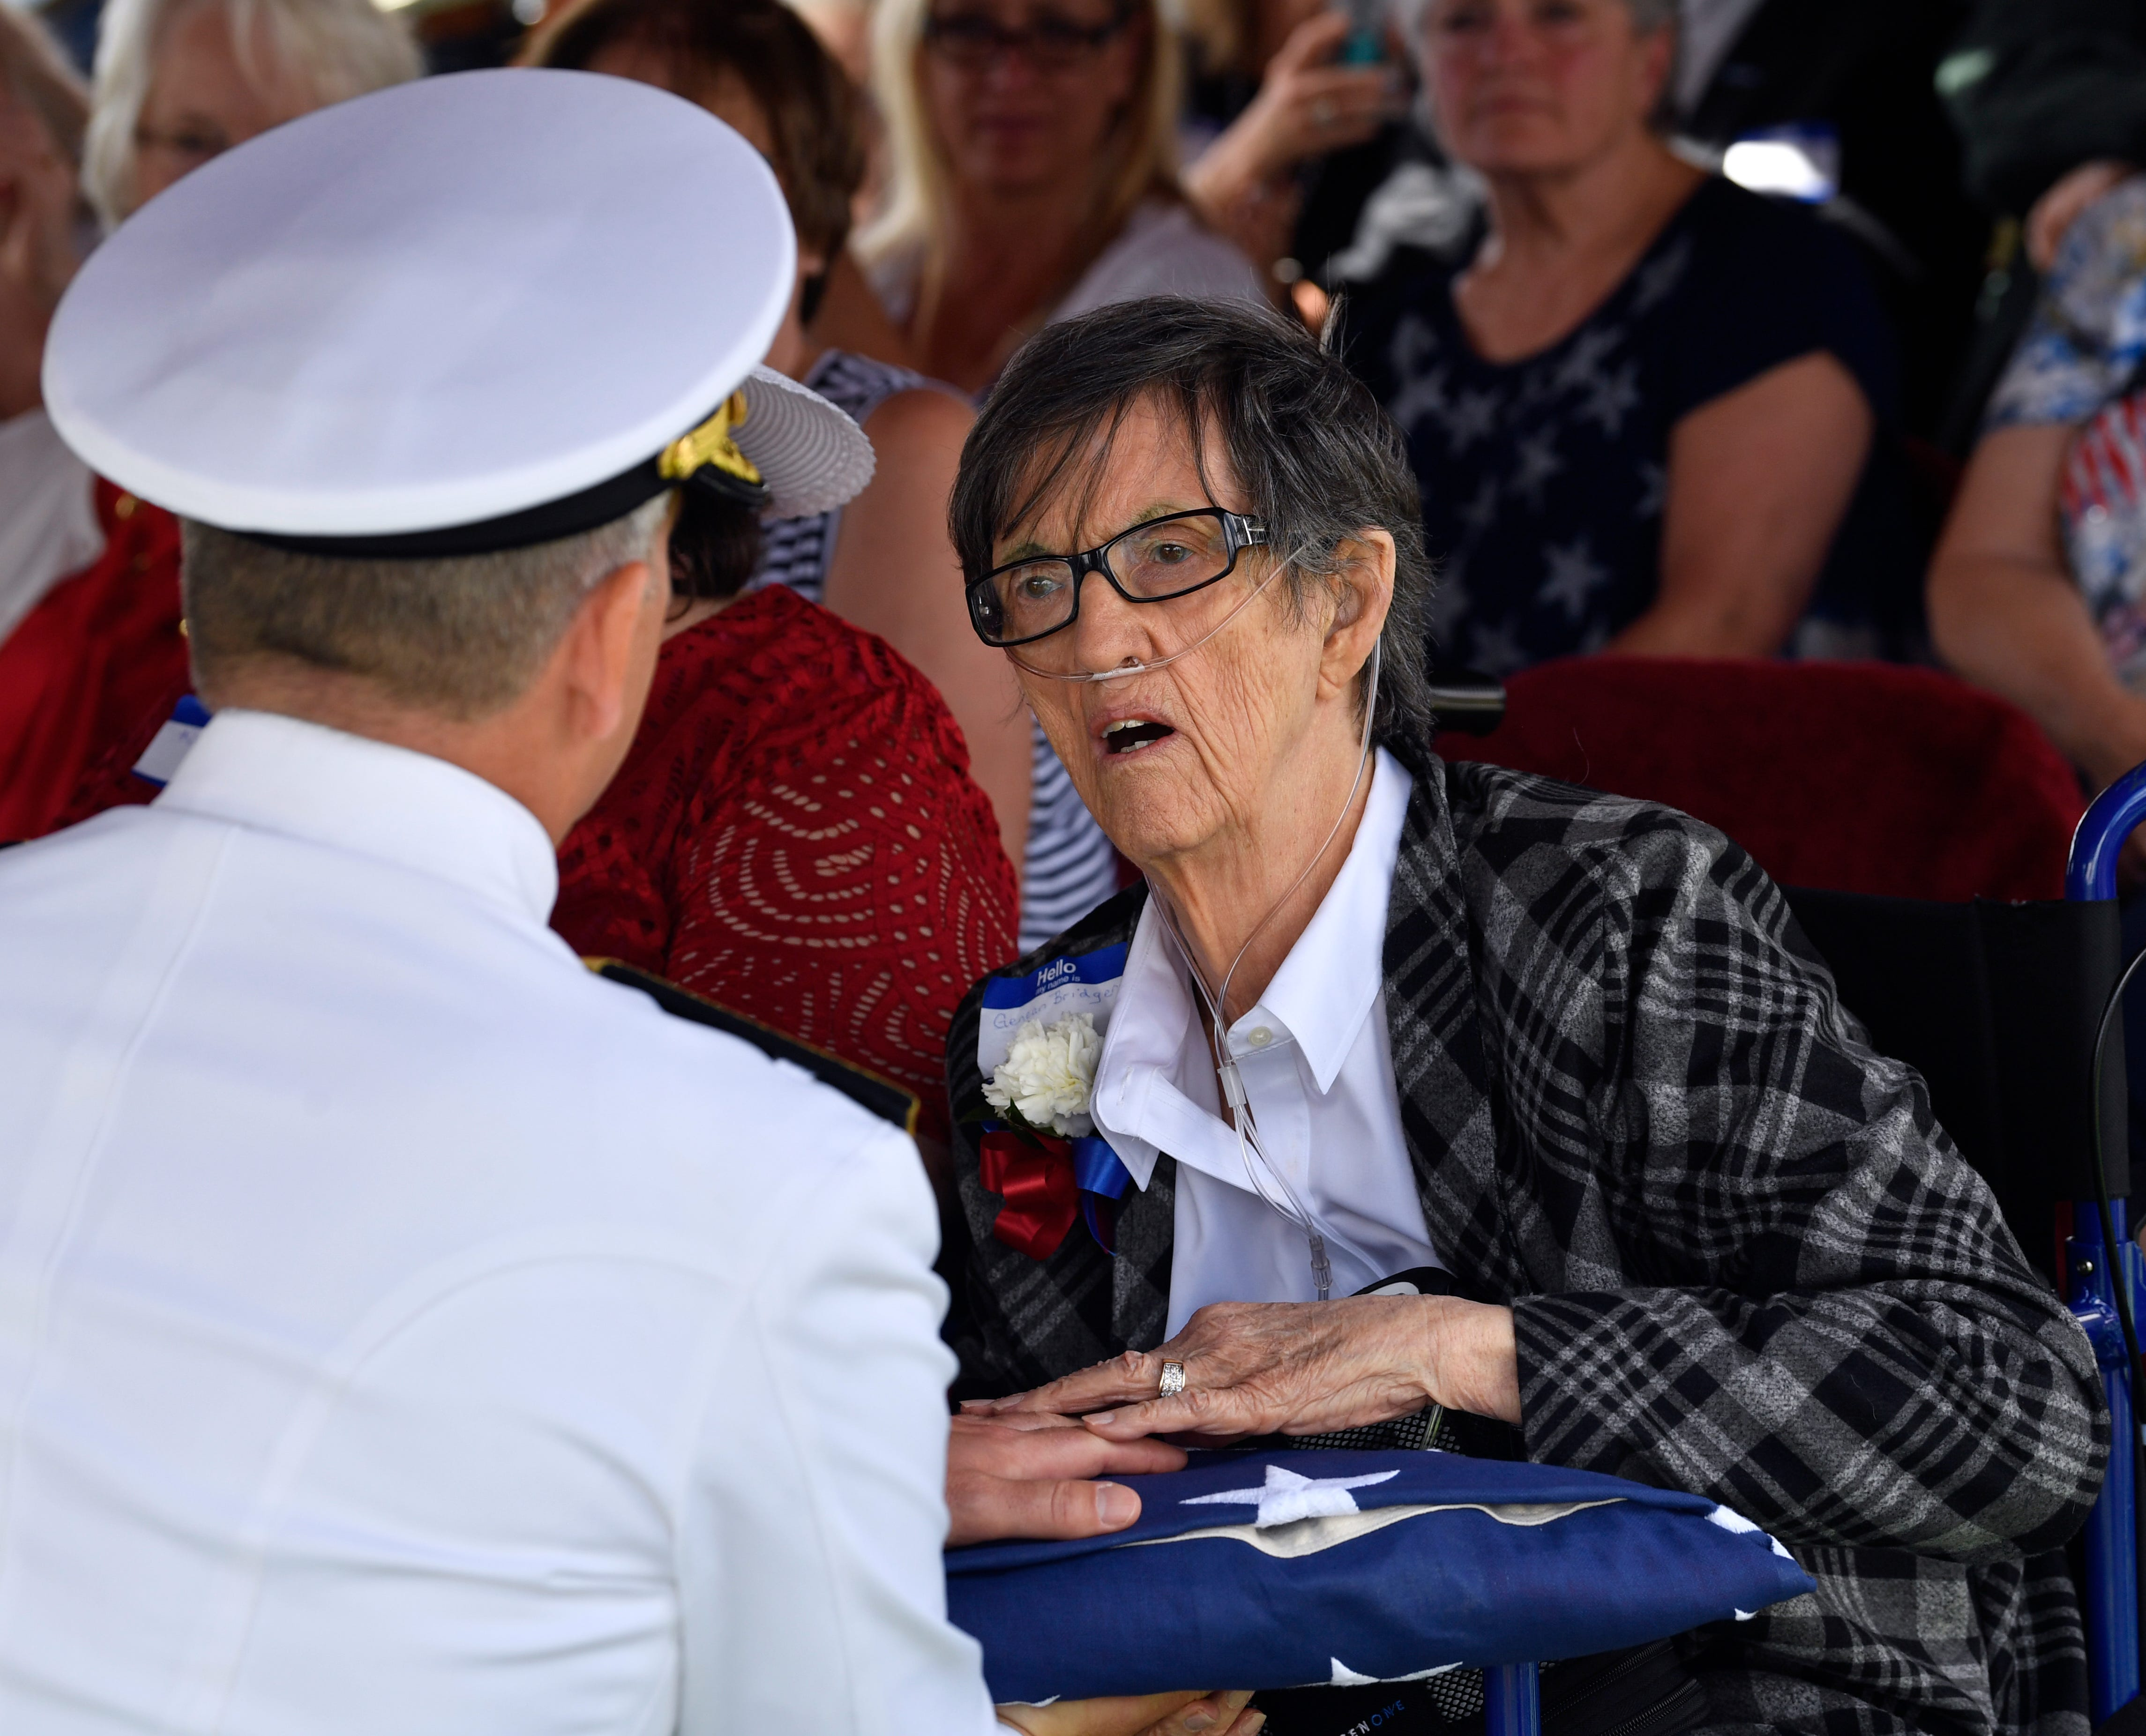 Rear Admiral Ted LeClair, the Deputy Commander of the U.S. Seventh Fleet, hands the folded flag to Genean Bridger, the niece of Seaman 1st Class Hale McKissack who was buried Saturday in Winters. McKissack died during the Japanese attack on Pearl Harbor Dec. 7, 1941, and it wasn't until 2015 that his remains were identified.